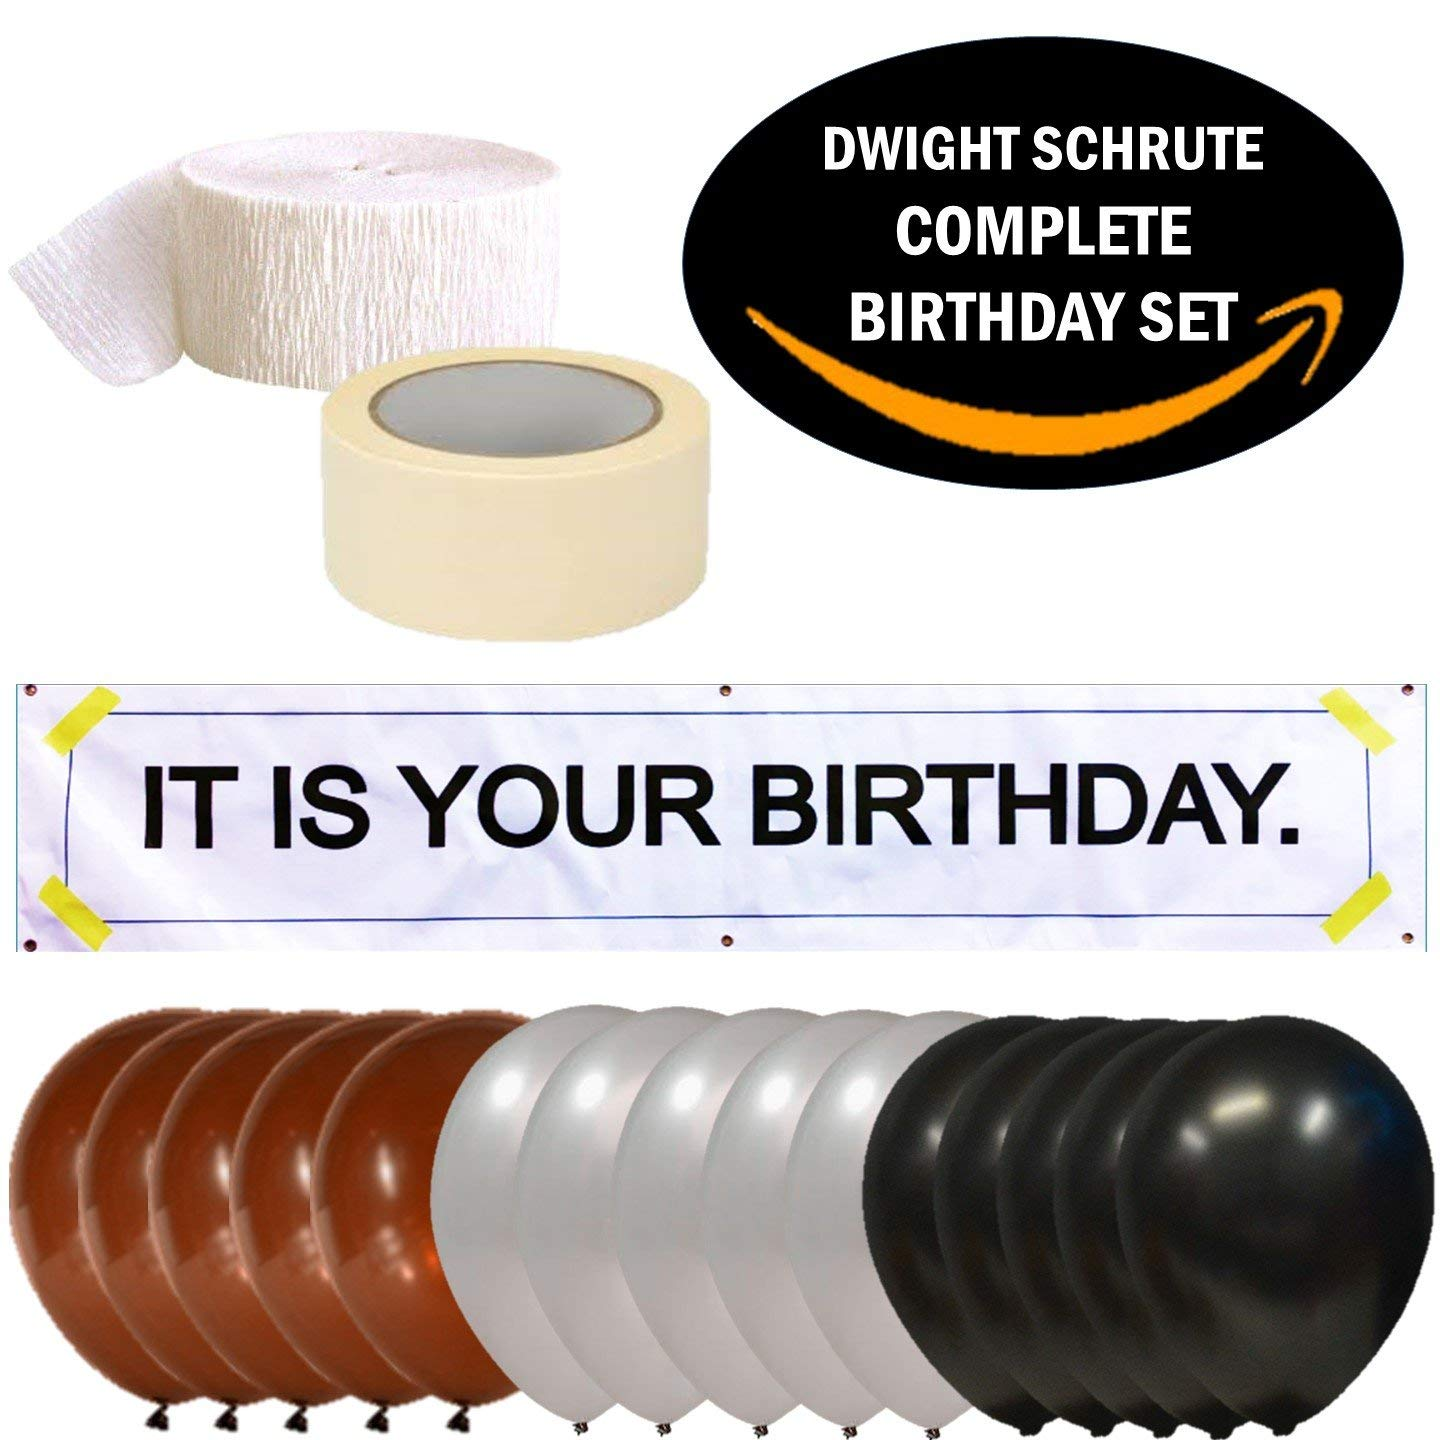 ''IT is Your Birthday.'' Dwight Schrute Complete Birthday Kit. Vinyl Banner, Balloons, Party Streamer and Tape. The Office Show 18 Piece Set